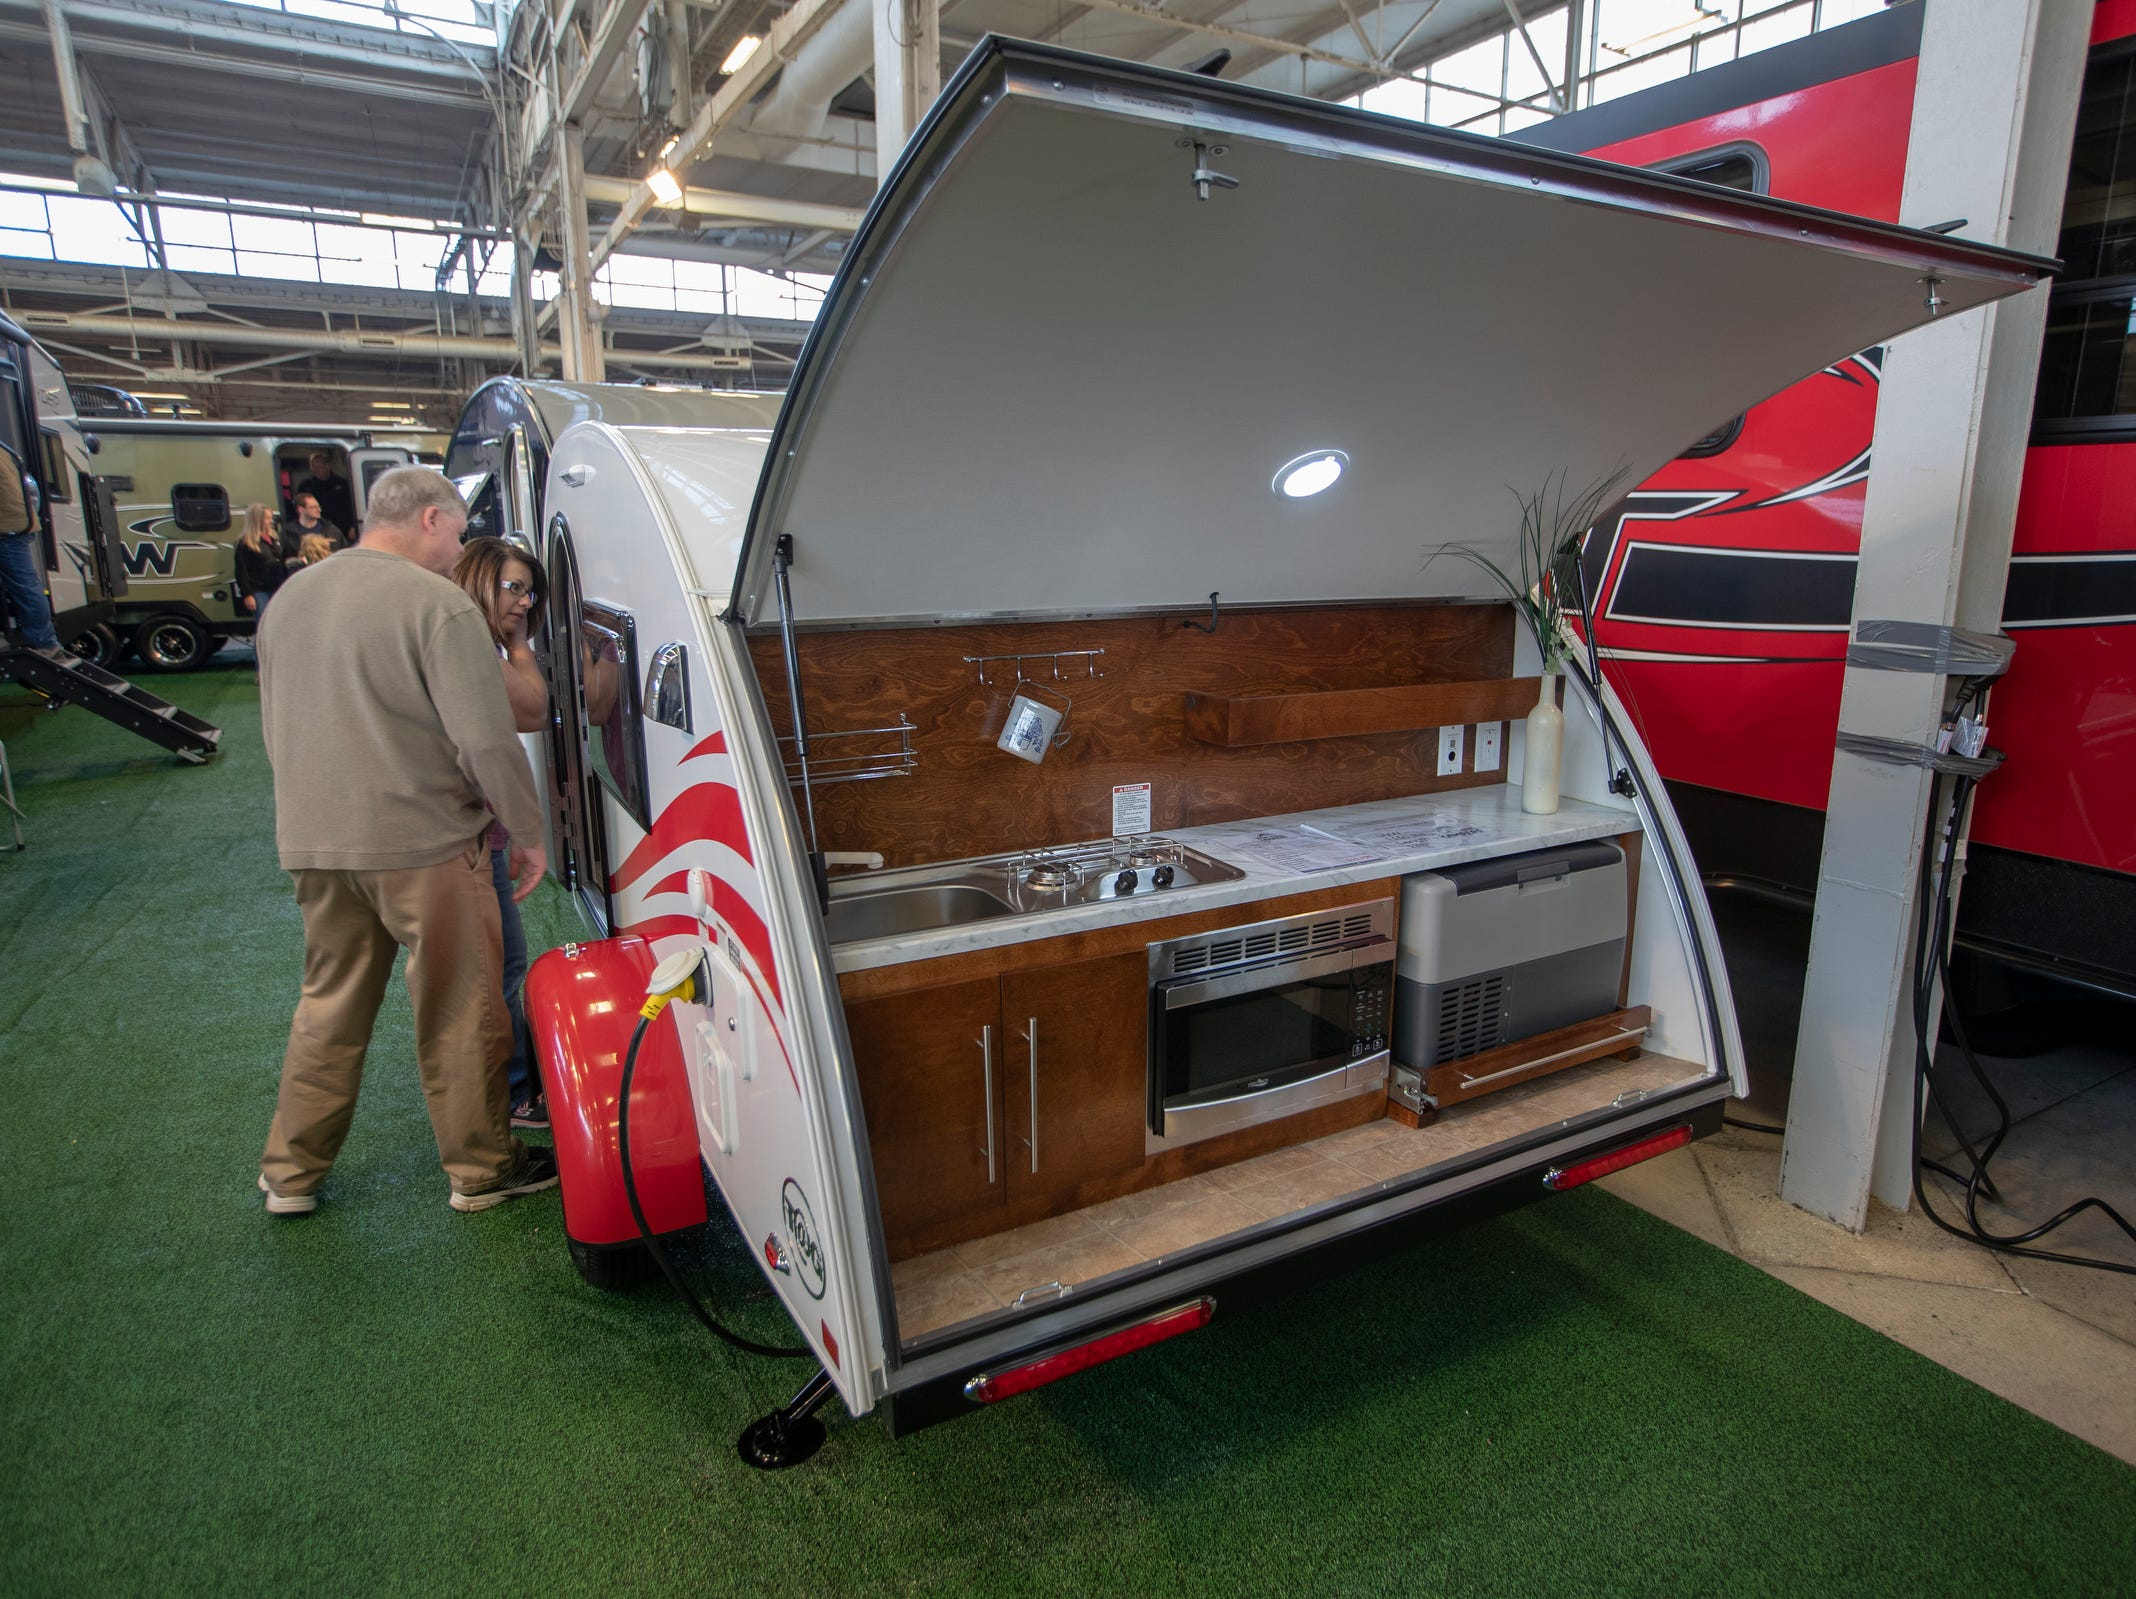 A small unit on display at the Indy RV Expo, Indiana State Fairgrounds, Indianapolis, Sunday, January 6, 2019. The show runs through the 13th.